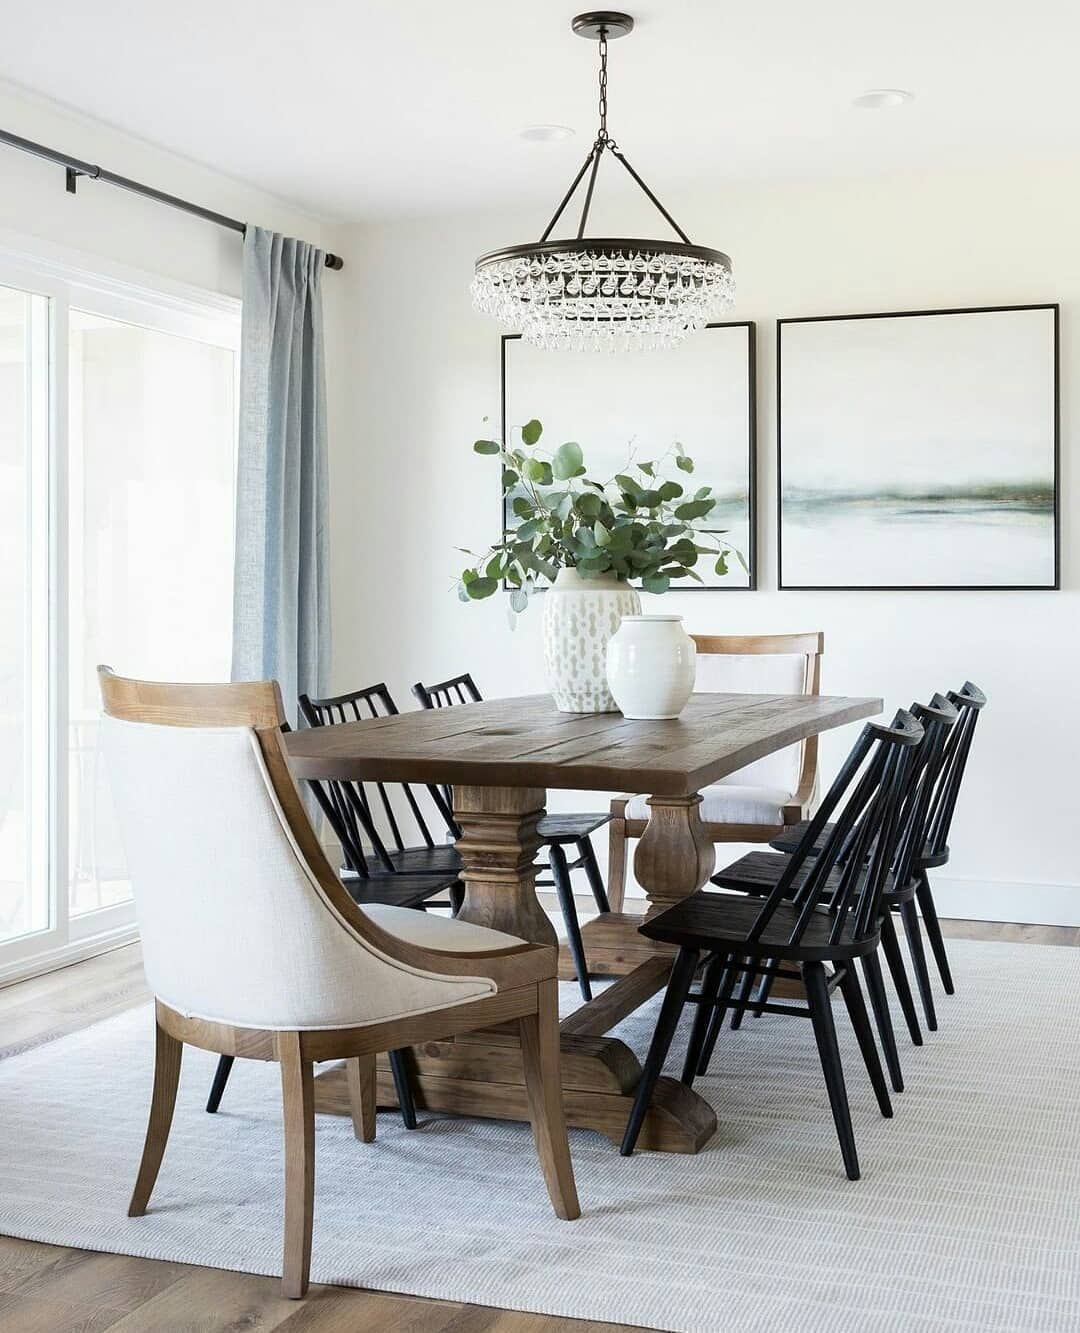 Mailoa Jules Tone On Instagram Sundays Are For Inspiration And I Am Feeling Inspired By This Lovely Space By Apartment Decor Inspiration Home Home Decor